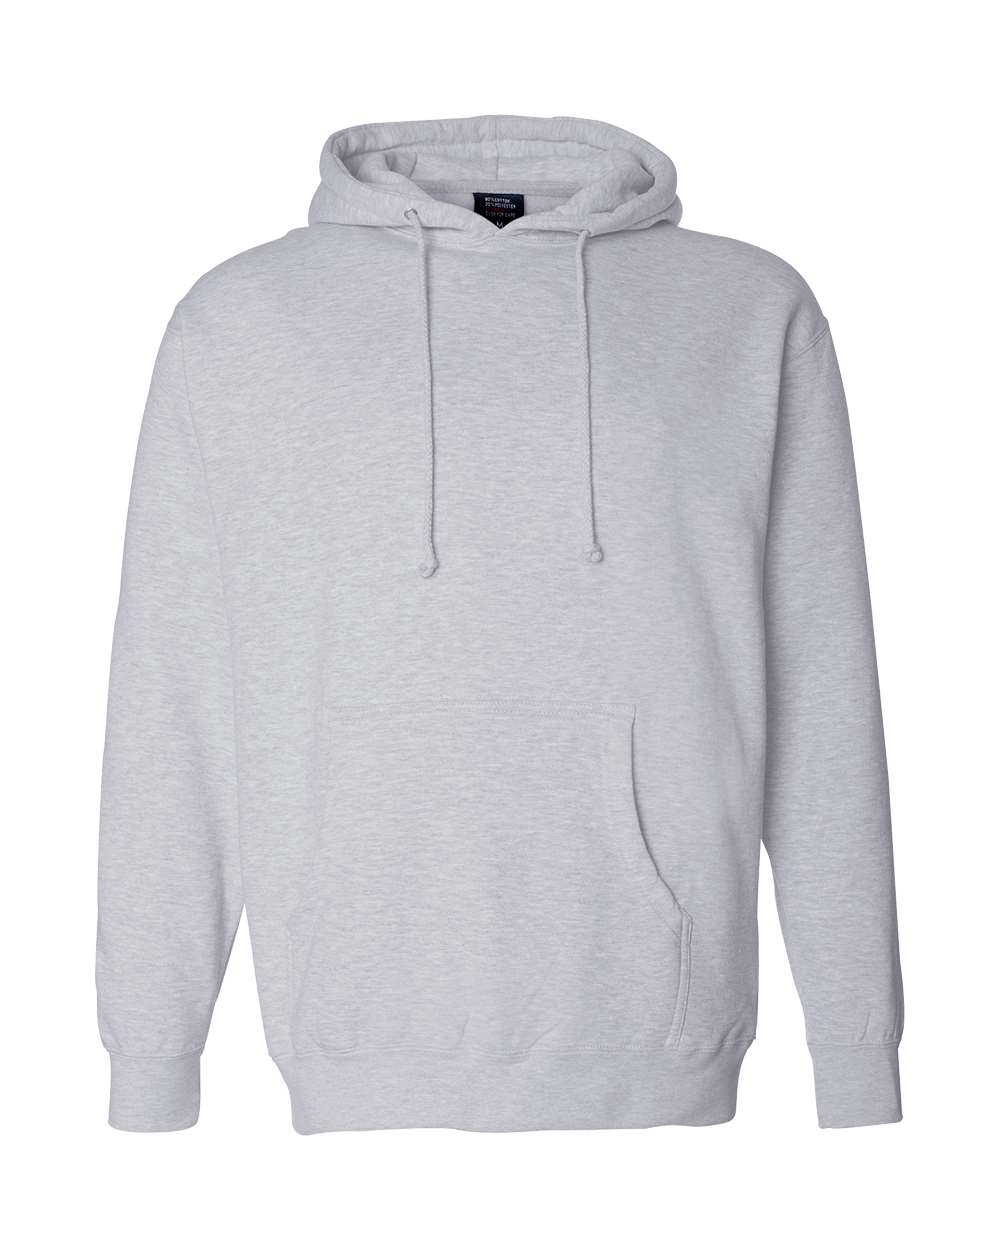 Independent-Trading-Co-Mens-Hooded-Pullover-Sweatshirt-IND4000-up-to-3XL miniature 42